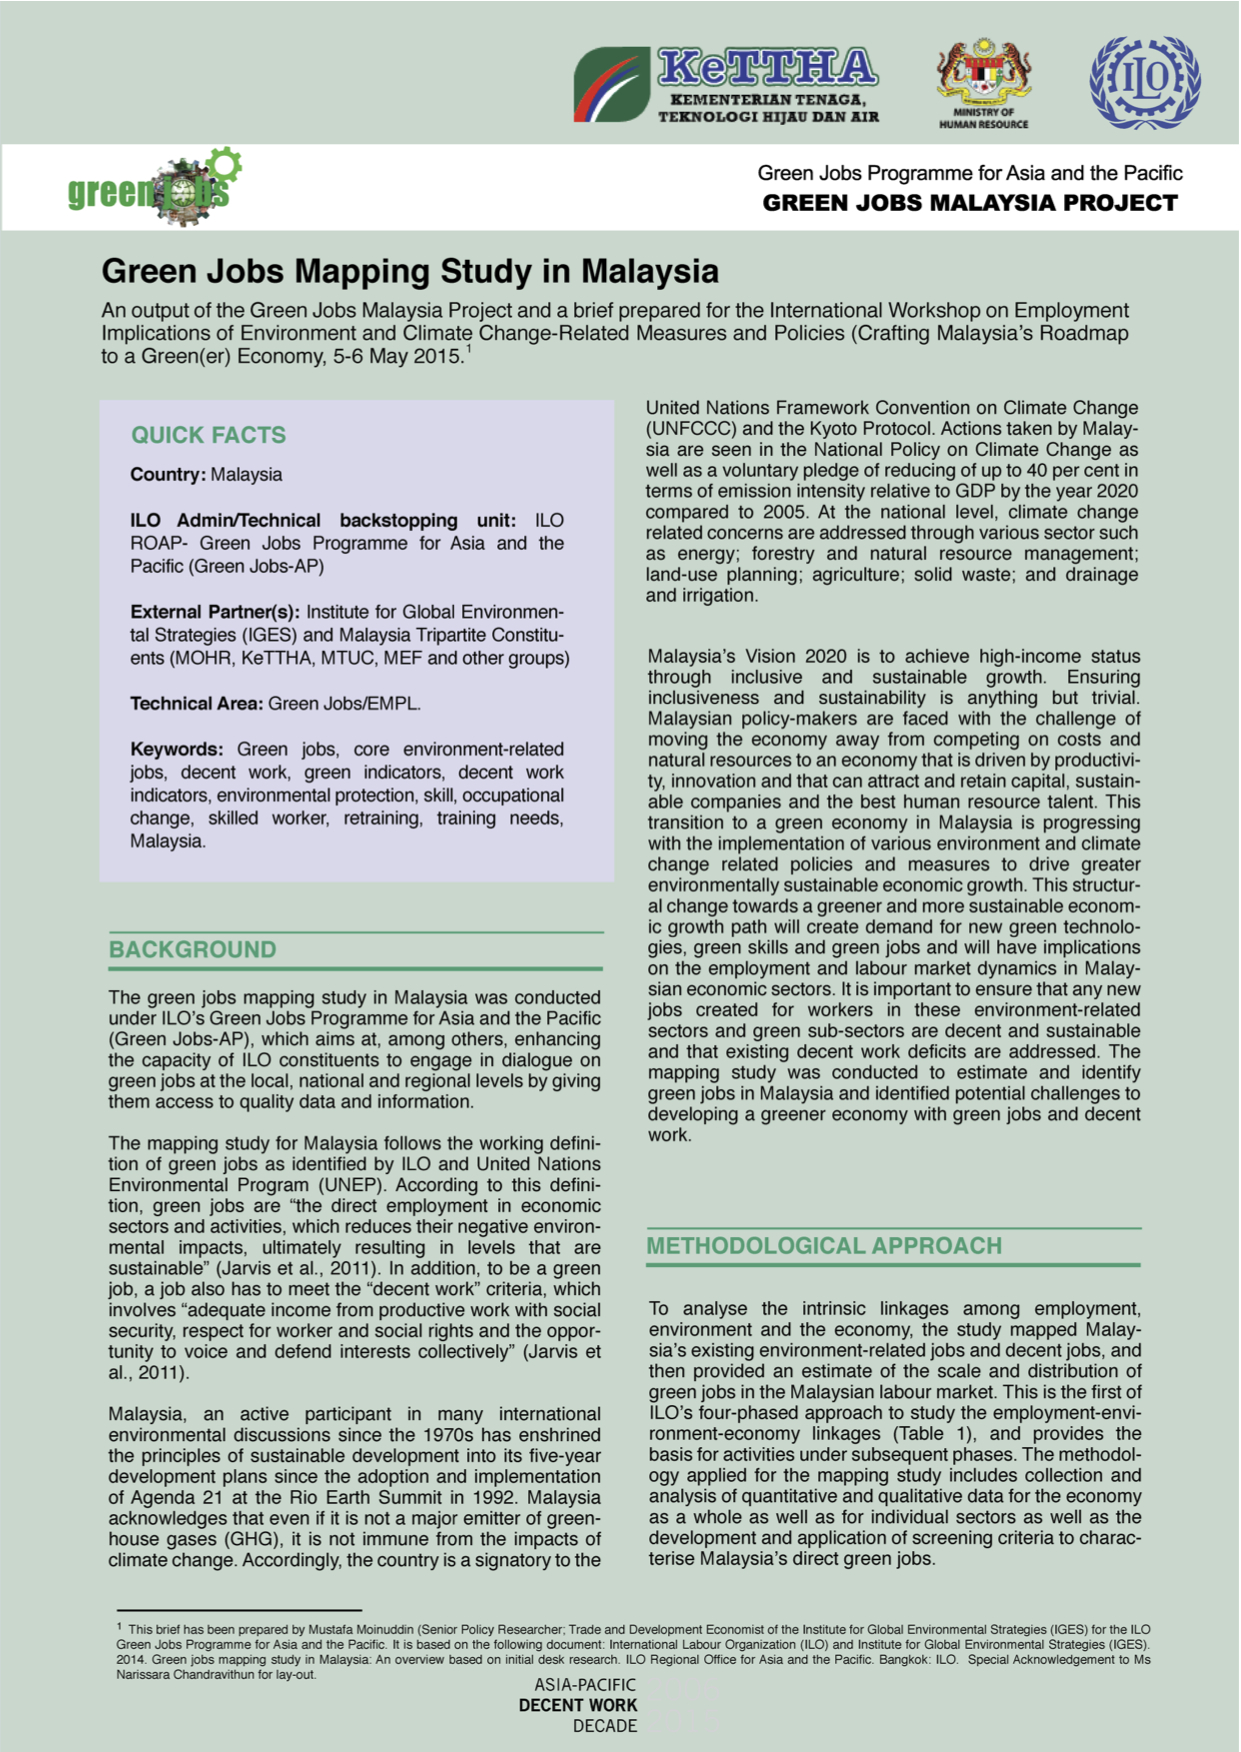 Brief: Snapshot of Green Jobs Mapping Study in Malaysia